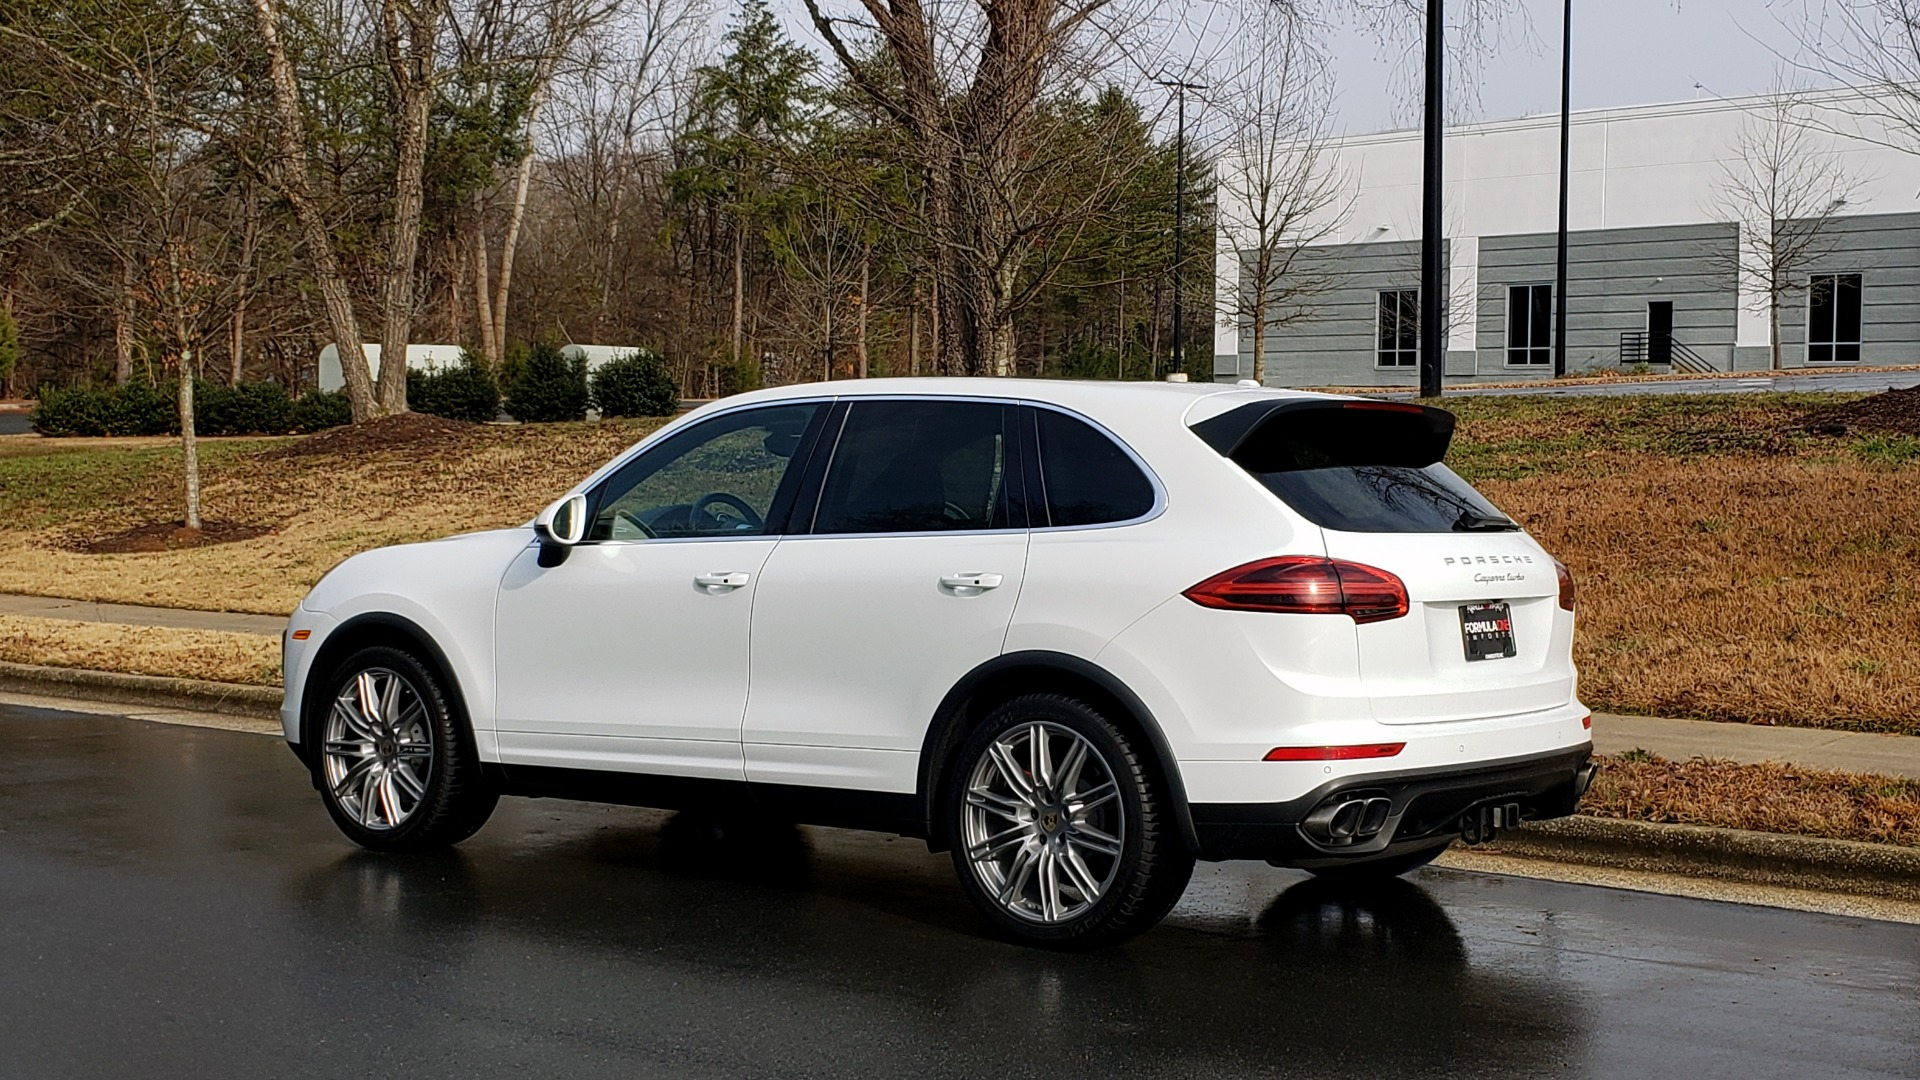 Used 2015 Porsche CAYENNE TURBO V8 / PREMIUM / NAV / SUNROOF / PARK ASSIST / LCA / REARVIEW for sale $47,995 at Formula Imports in Charlotte NC 28227 4